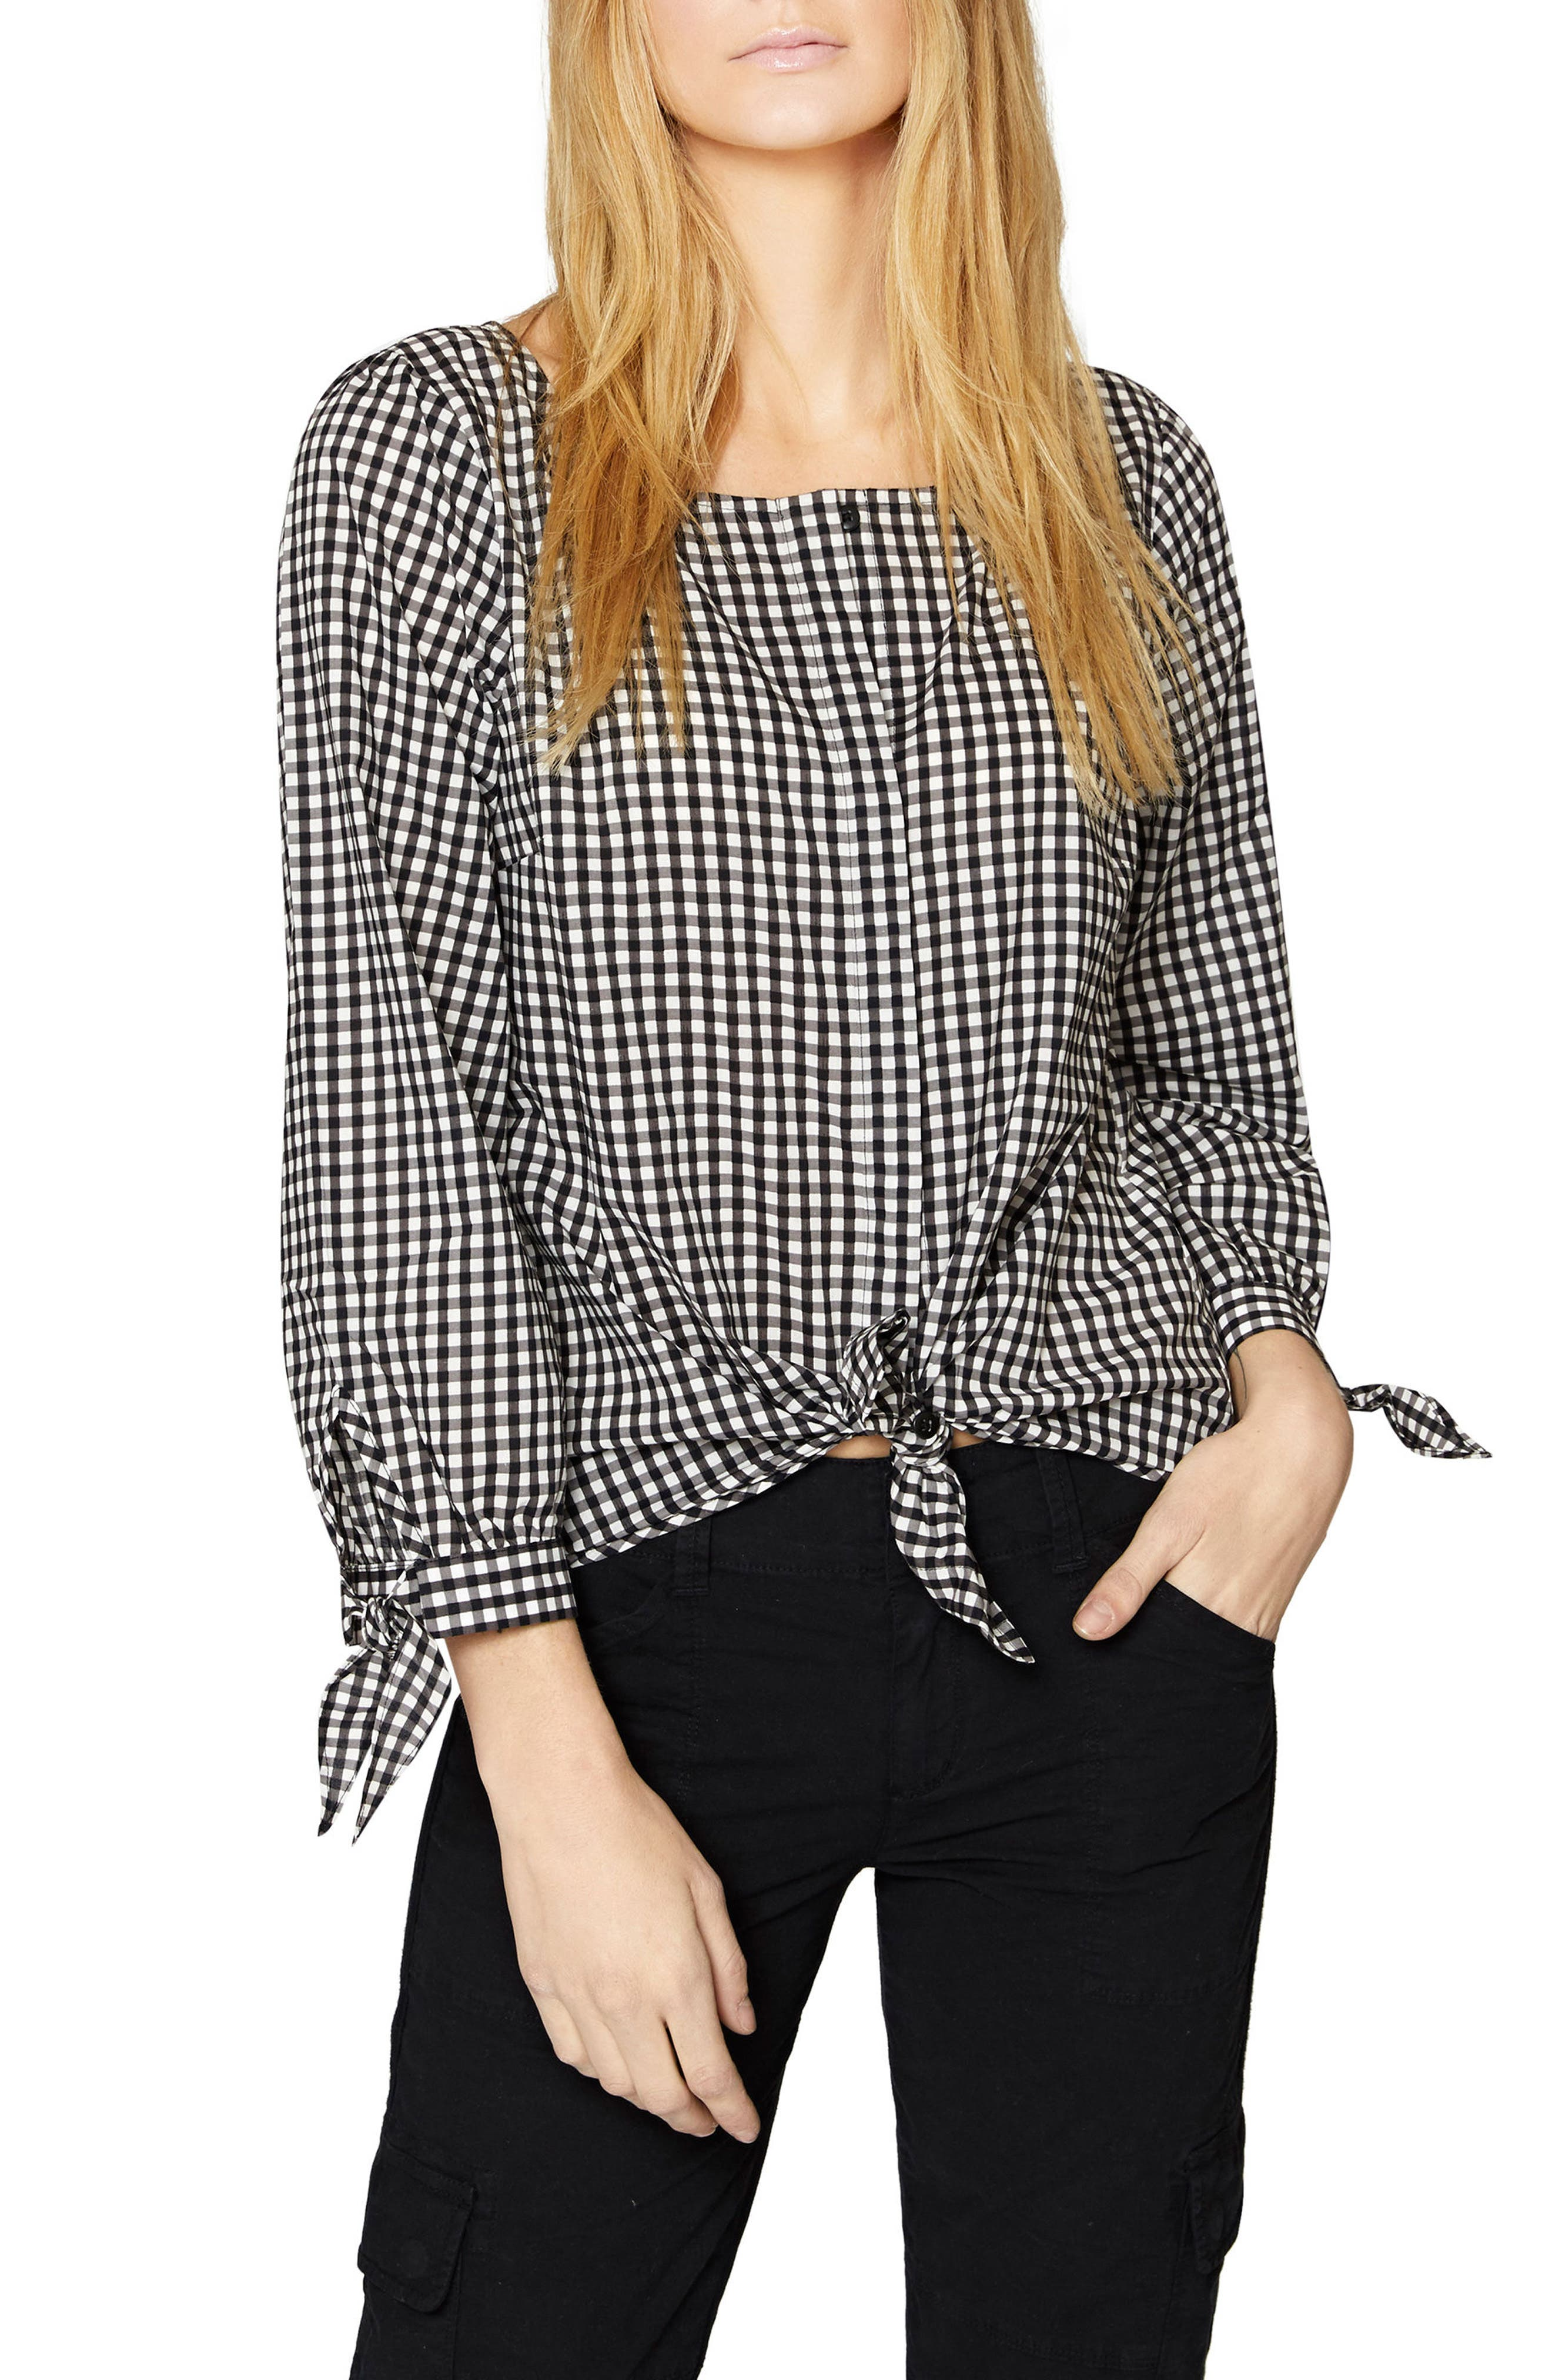 Madie Tie Sleeve Blouse,                             Main thumbnail 1, color,                             011